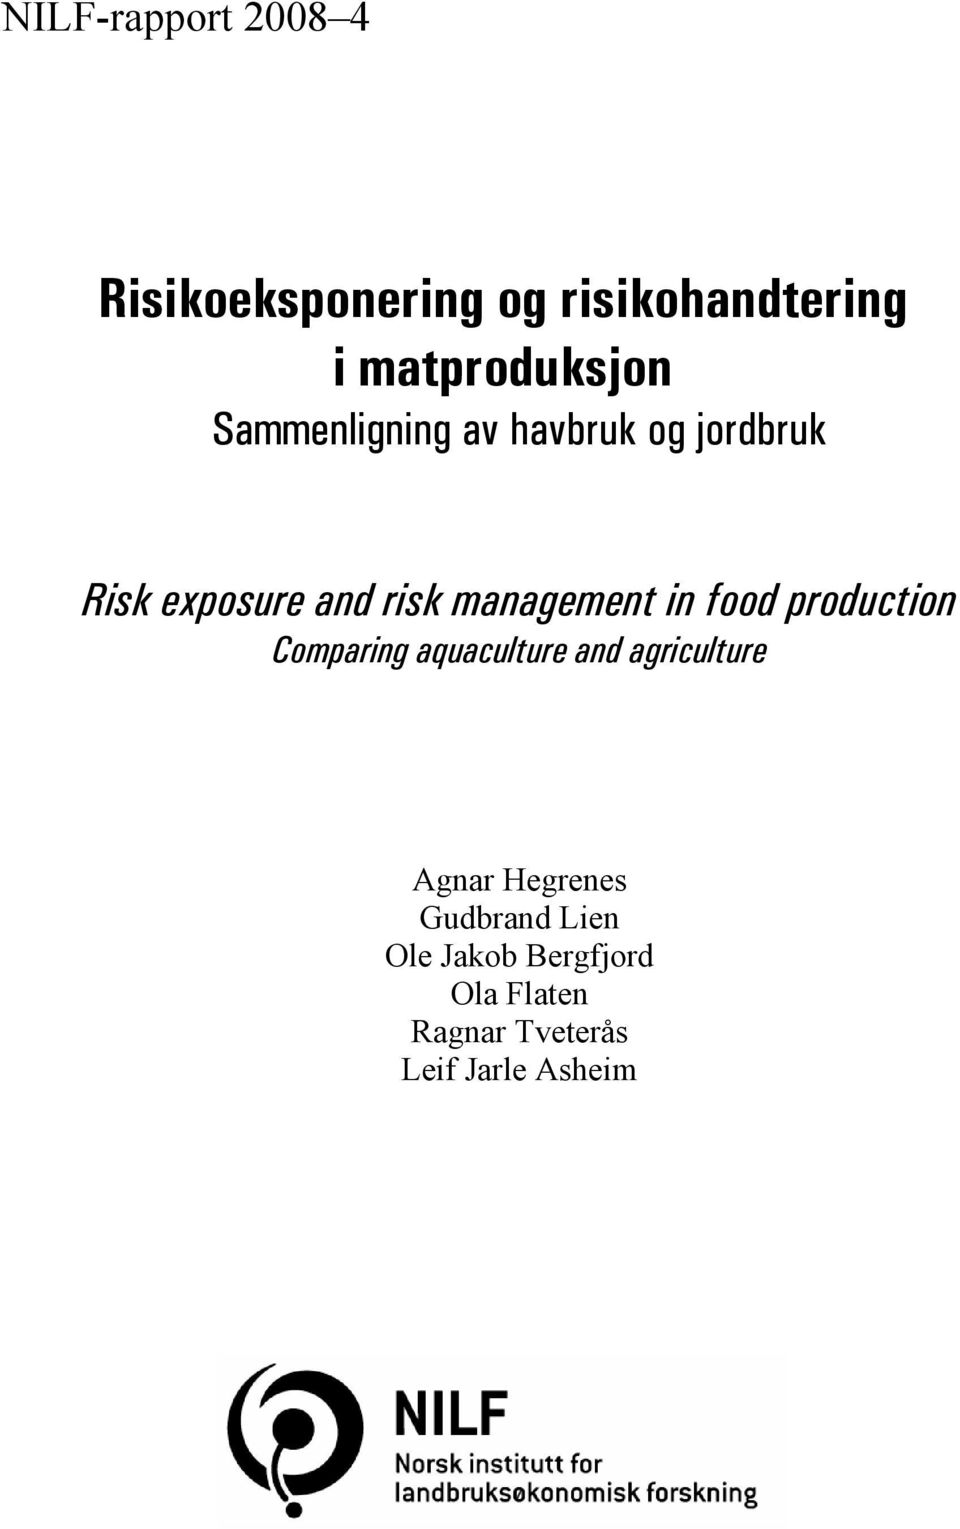 food production Comparing aquaculture and agriculture Agnar Hegrenes